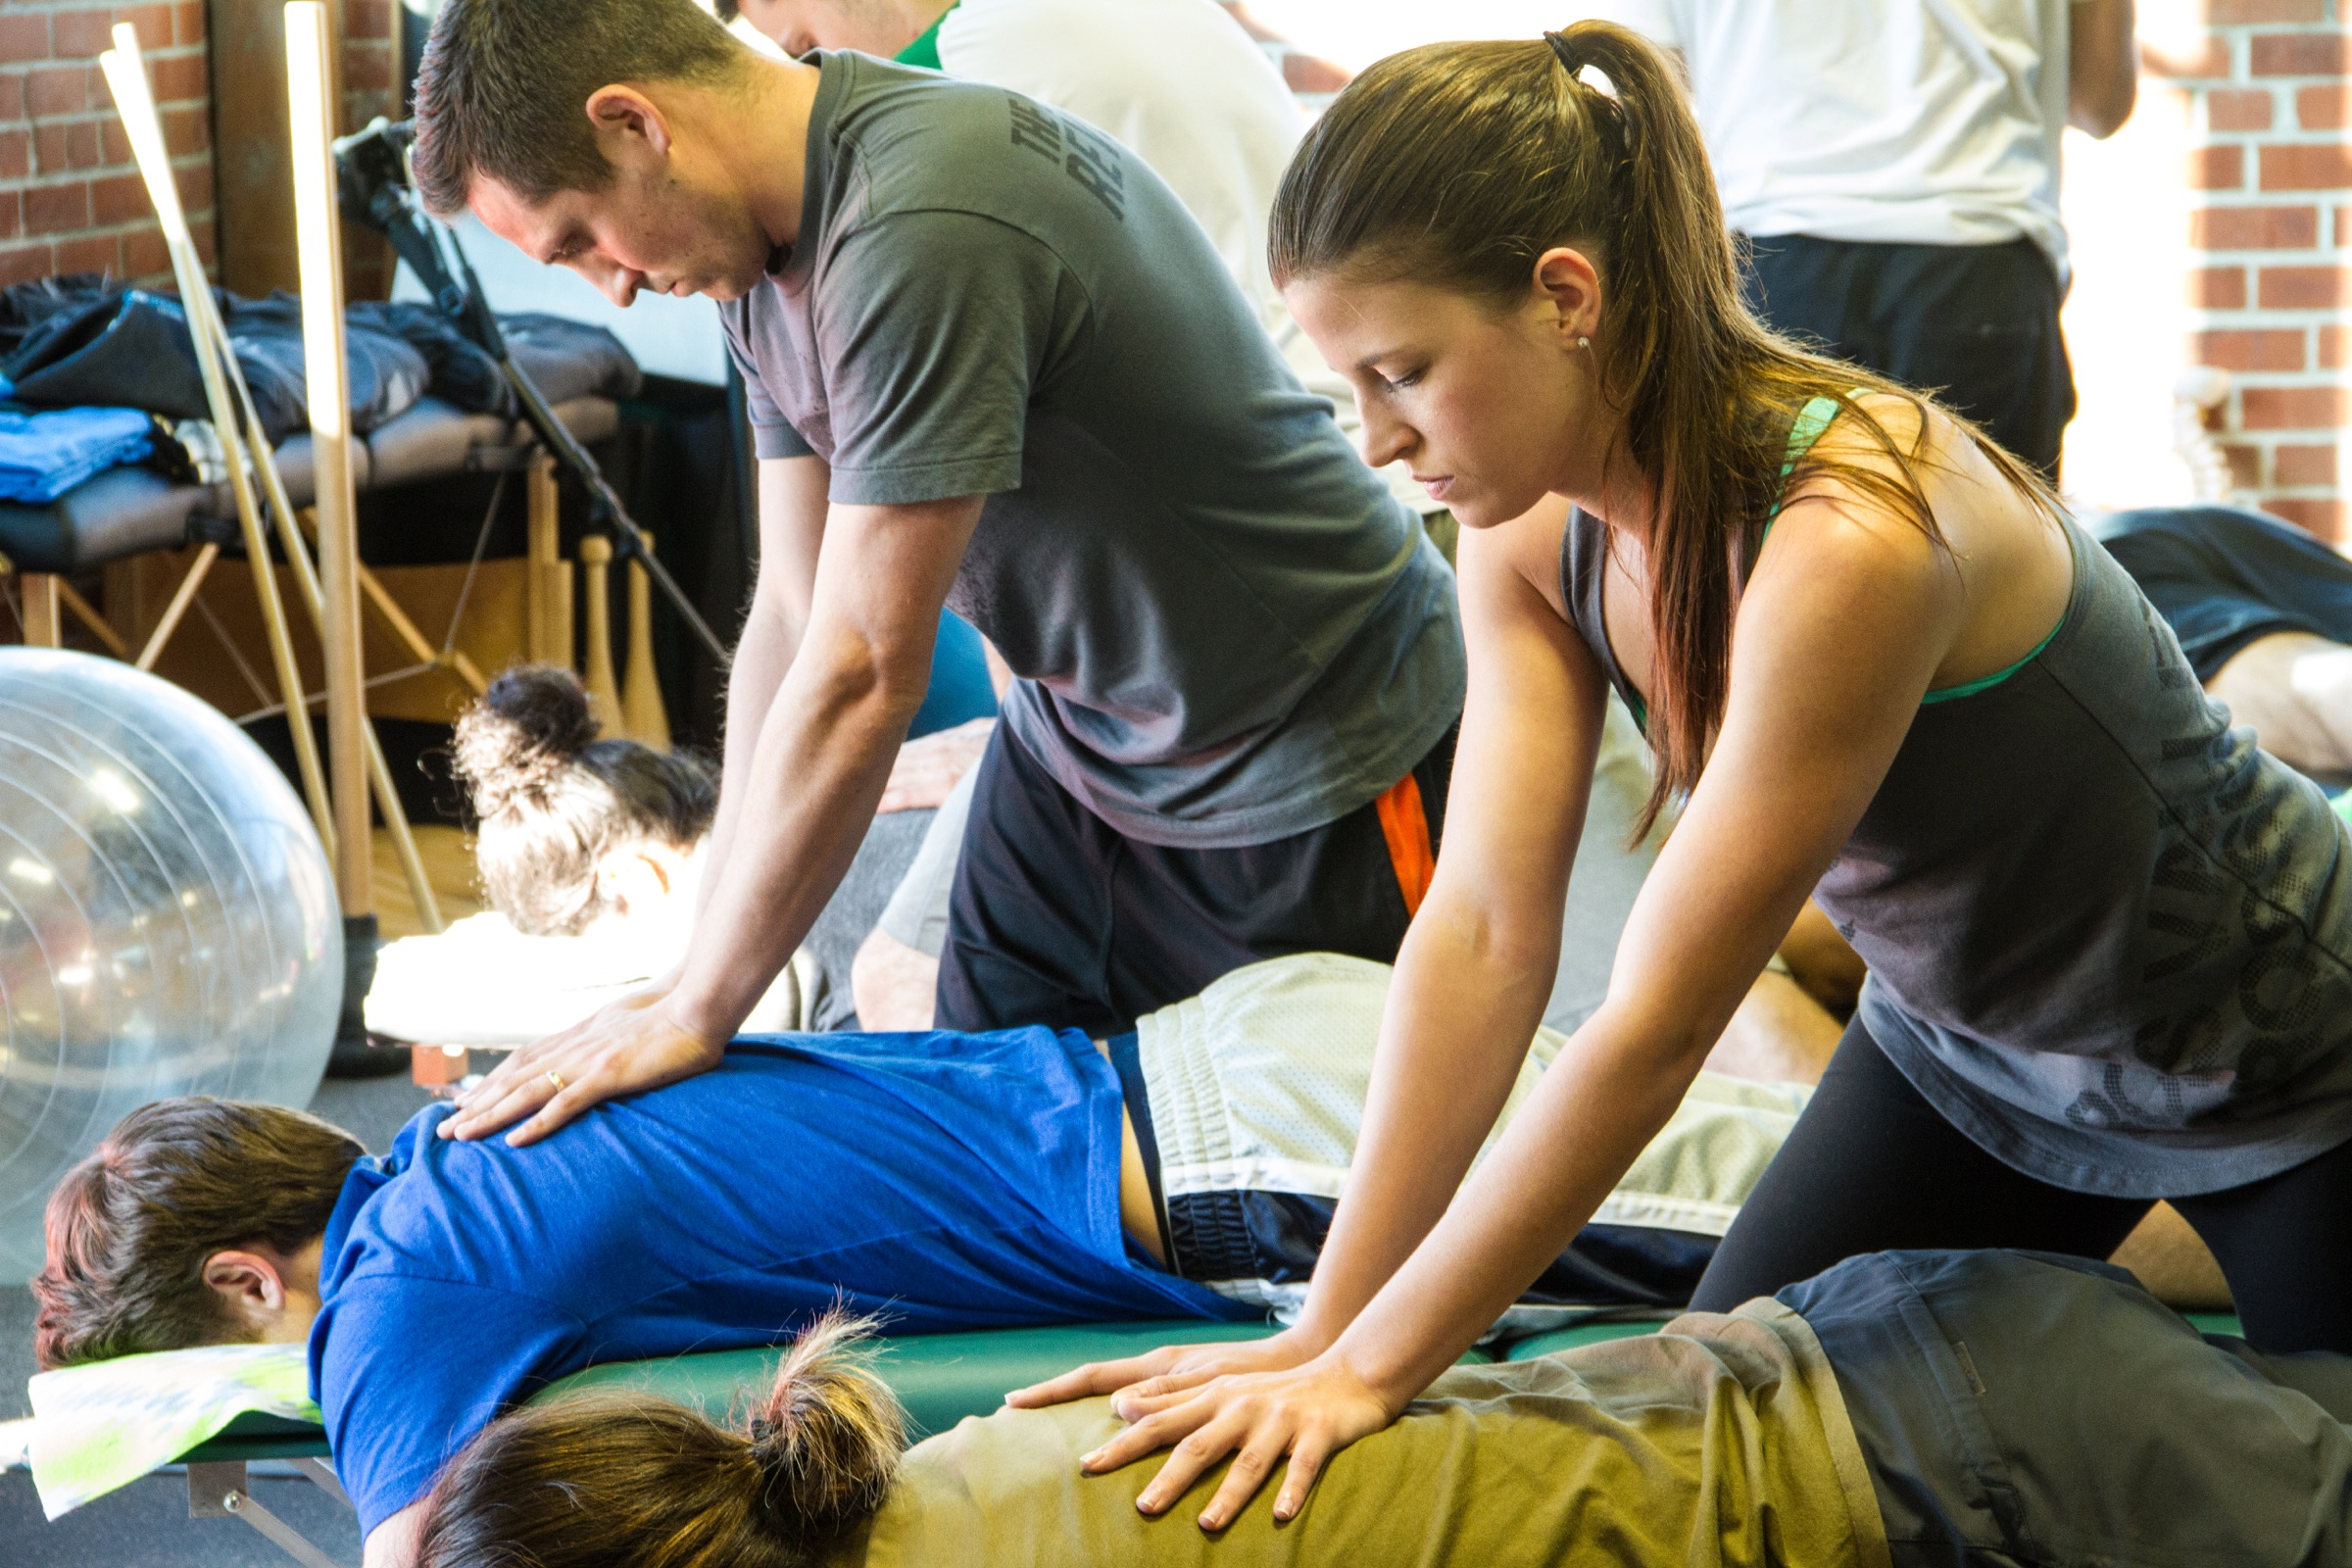 osteopathic and chiropractic techniques for manual therapists